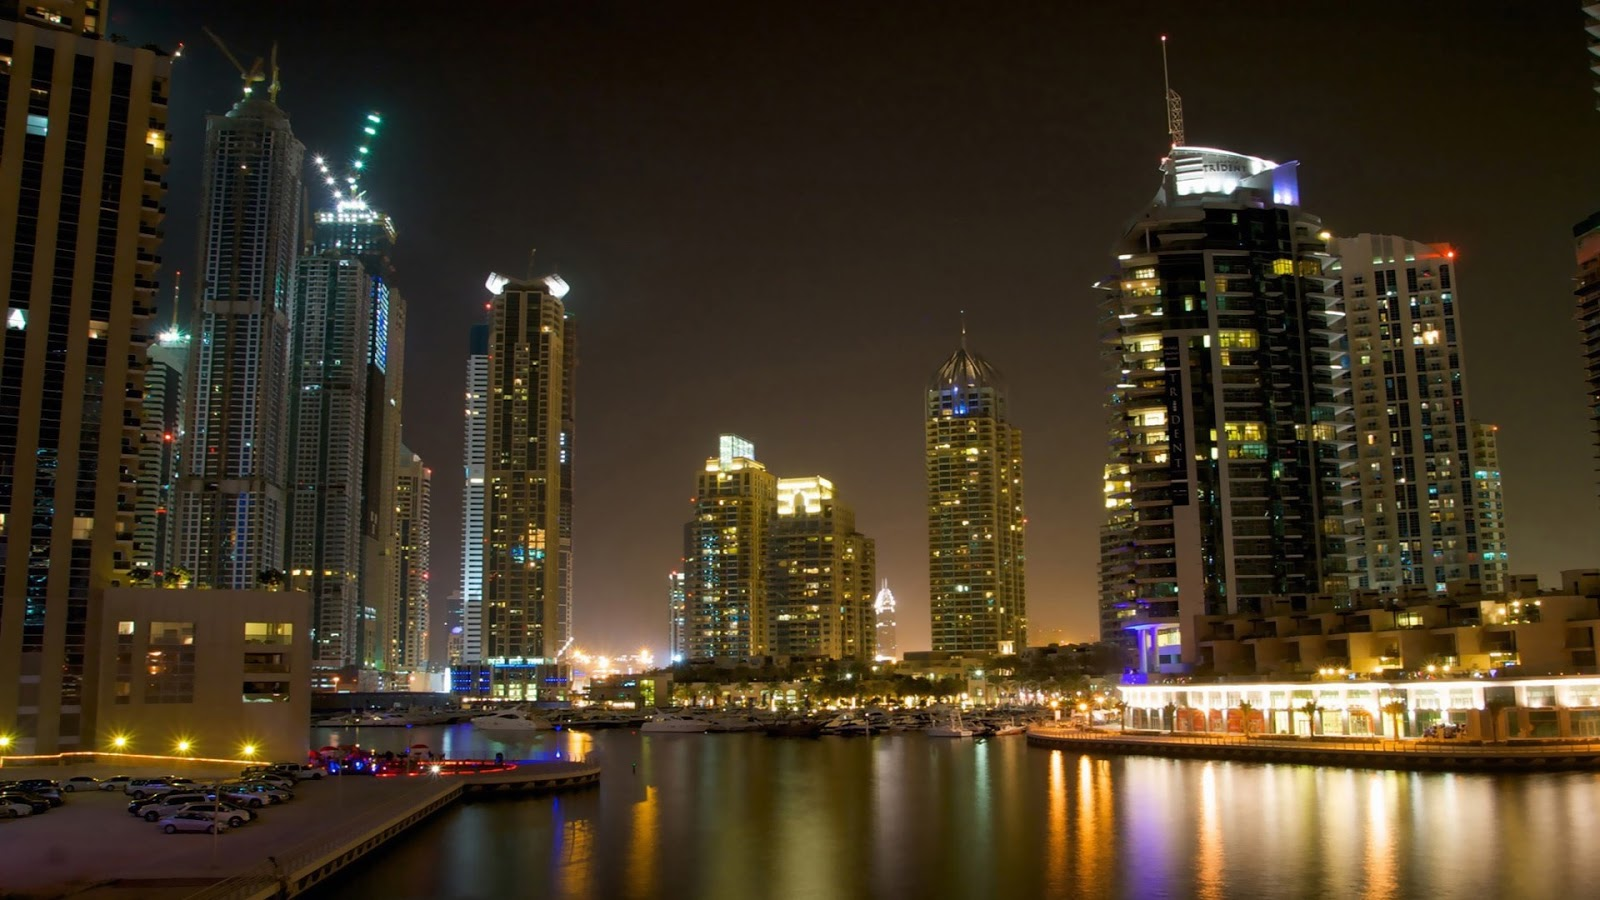 Dubai city hd wallpapers download 1080p ultra hd for 3d wallpaper for home in dubai